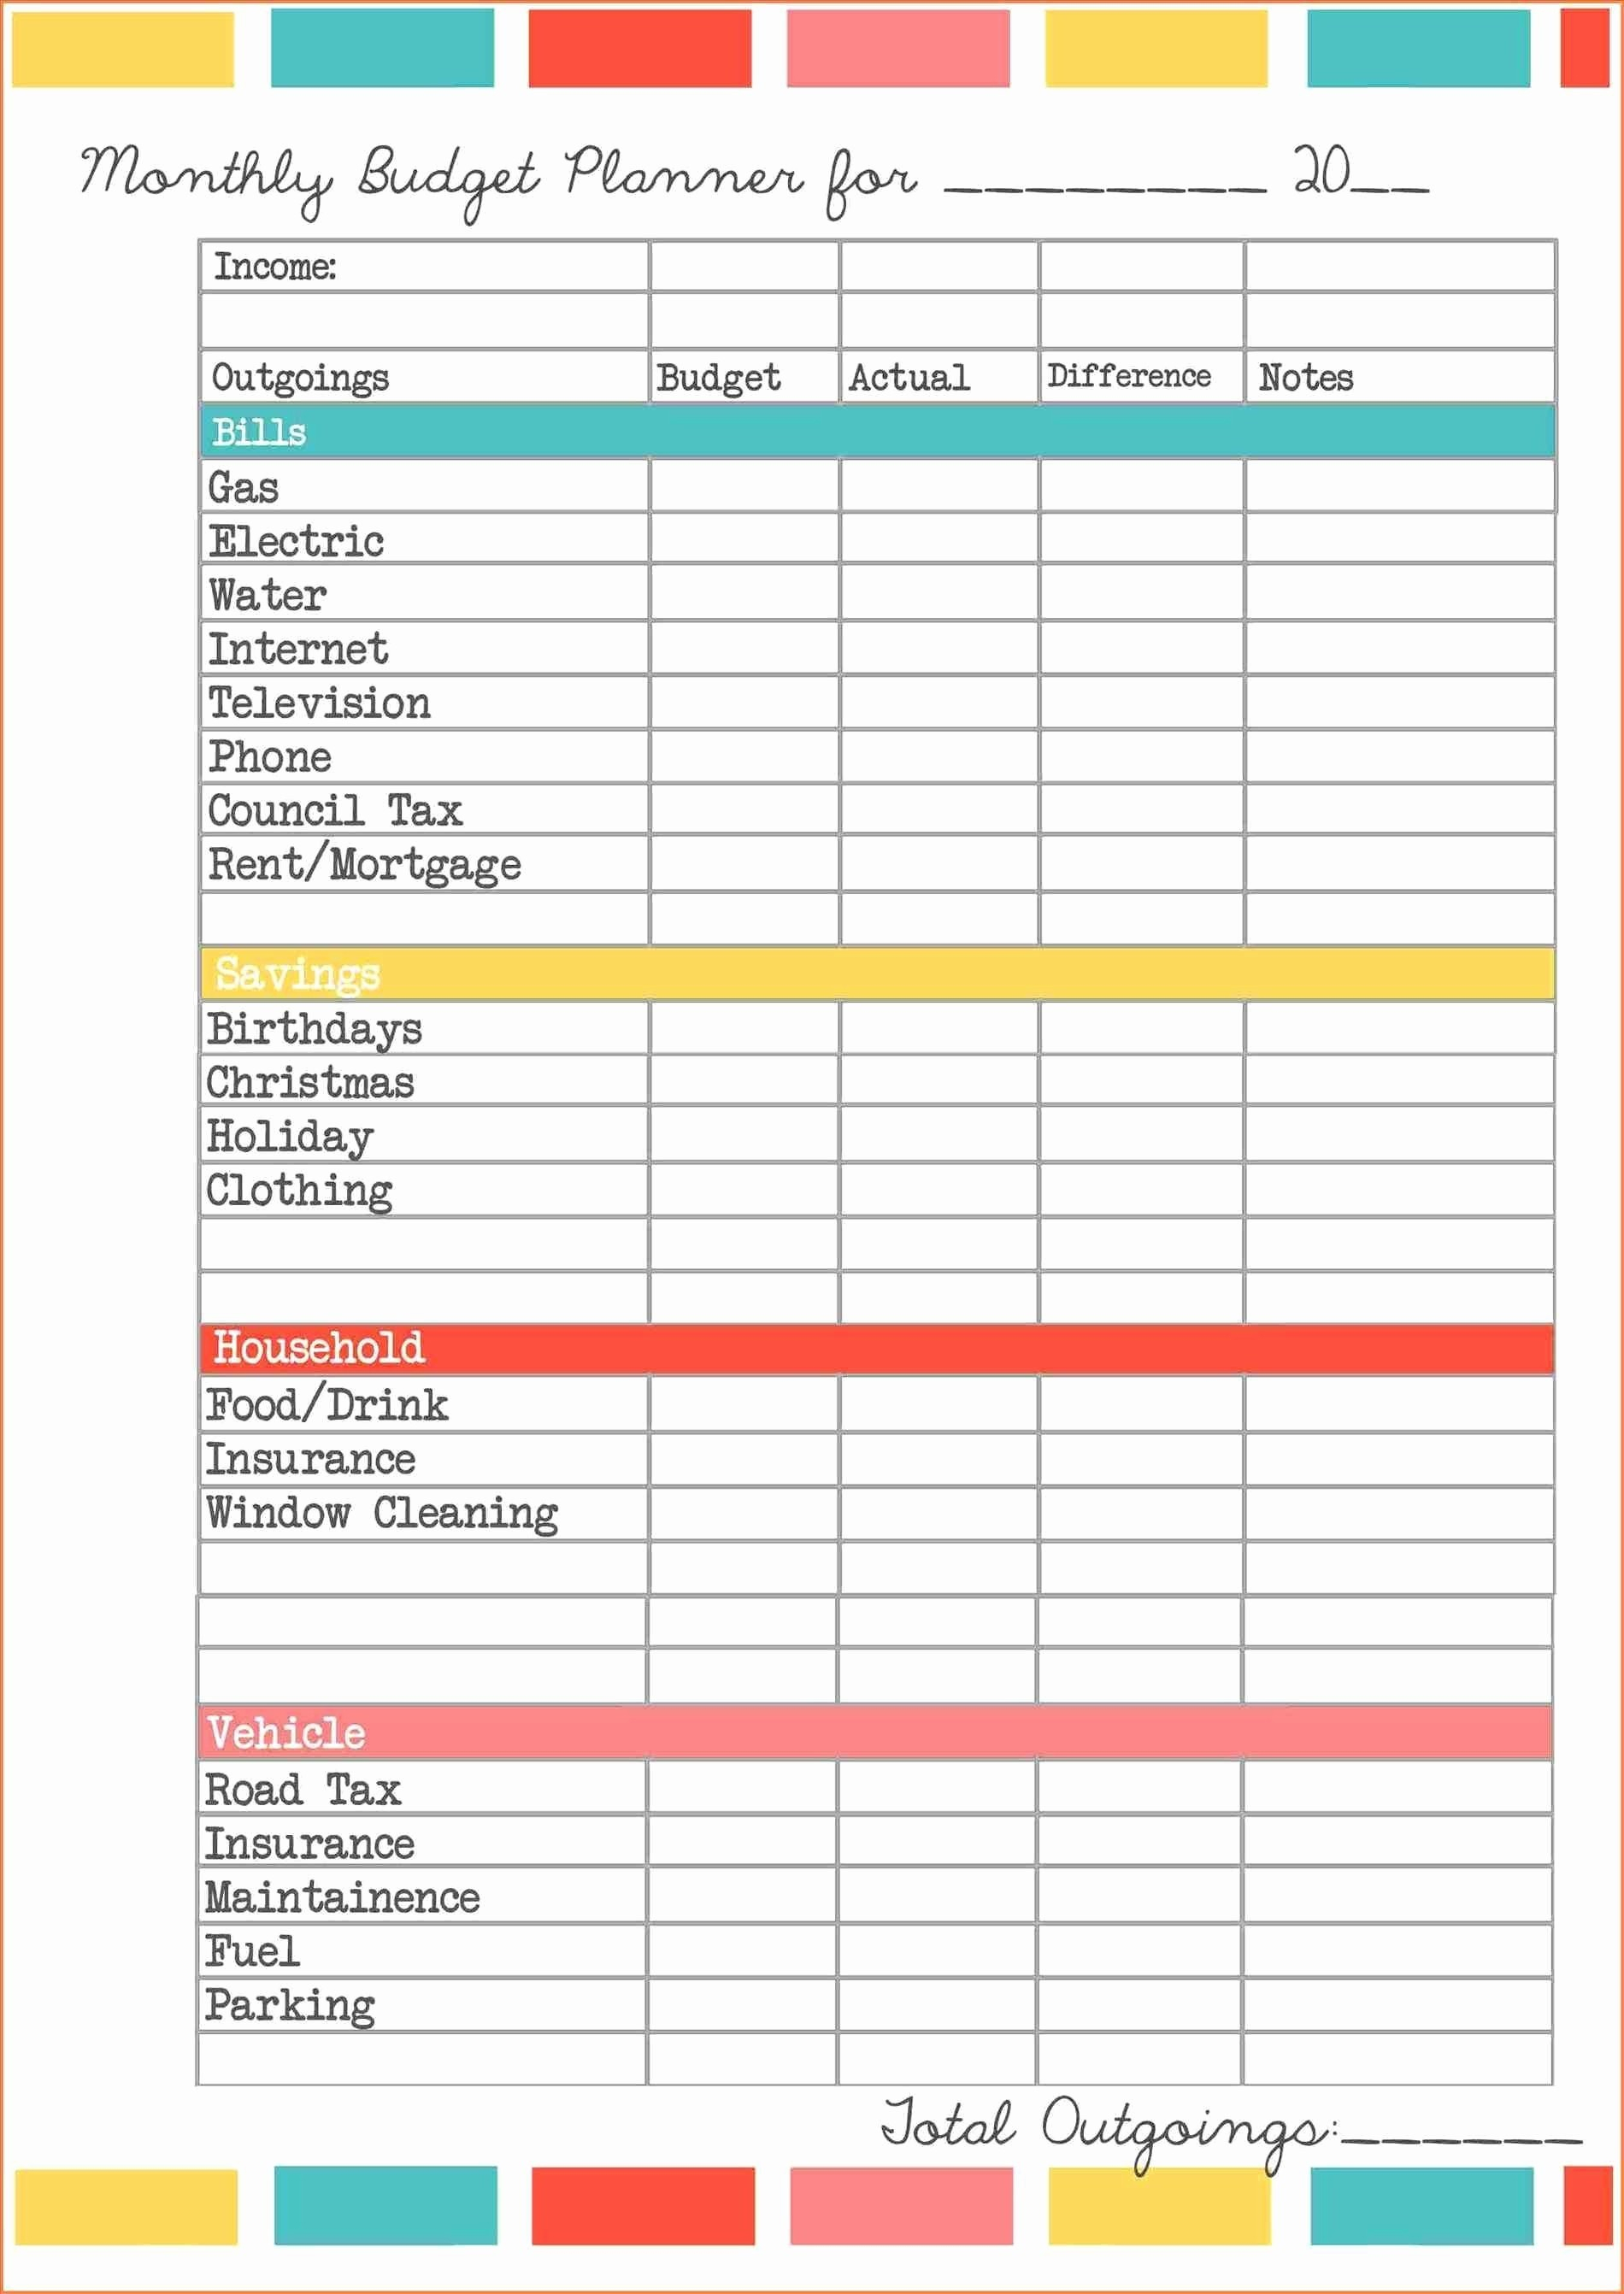 Spreadsheet Template Page 41 Dnv Os F101 Spreadsheet Home Budget Spreadsheet Uk Area Code